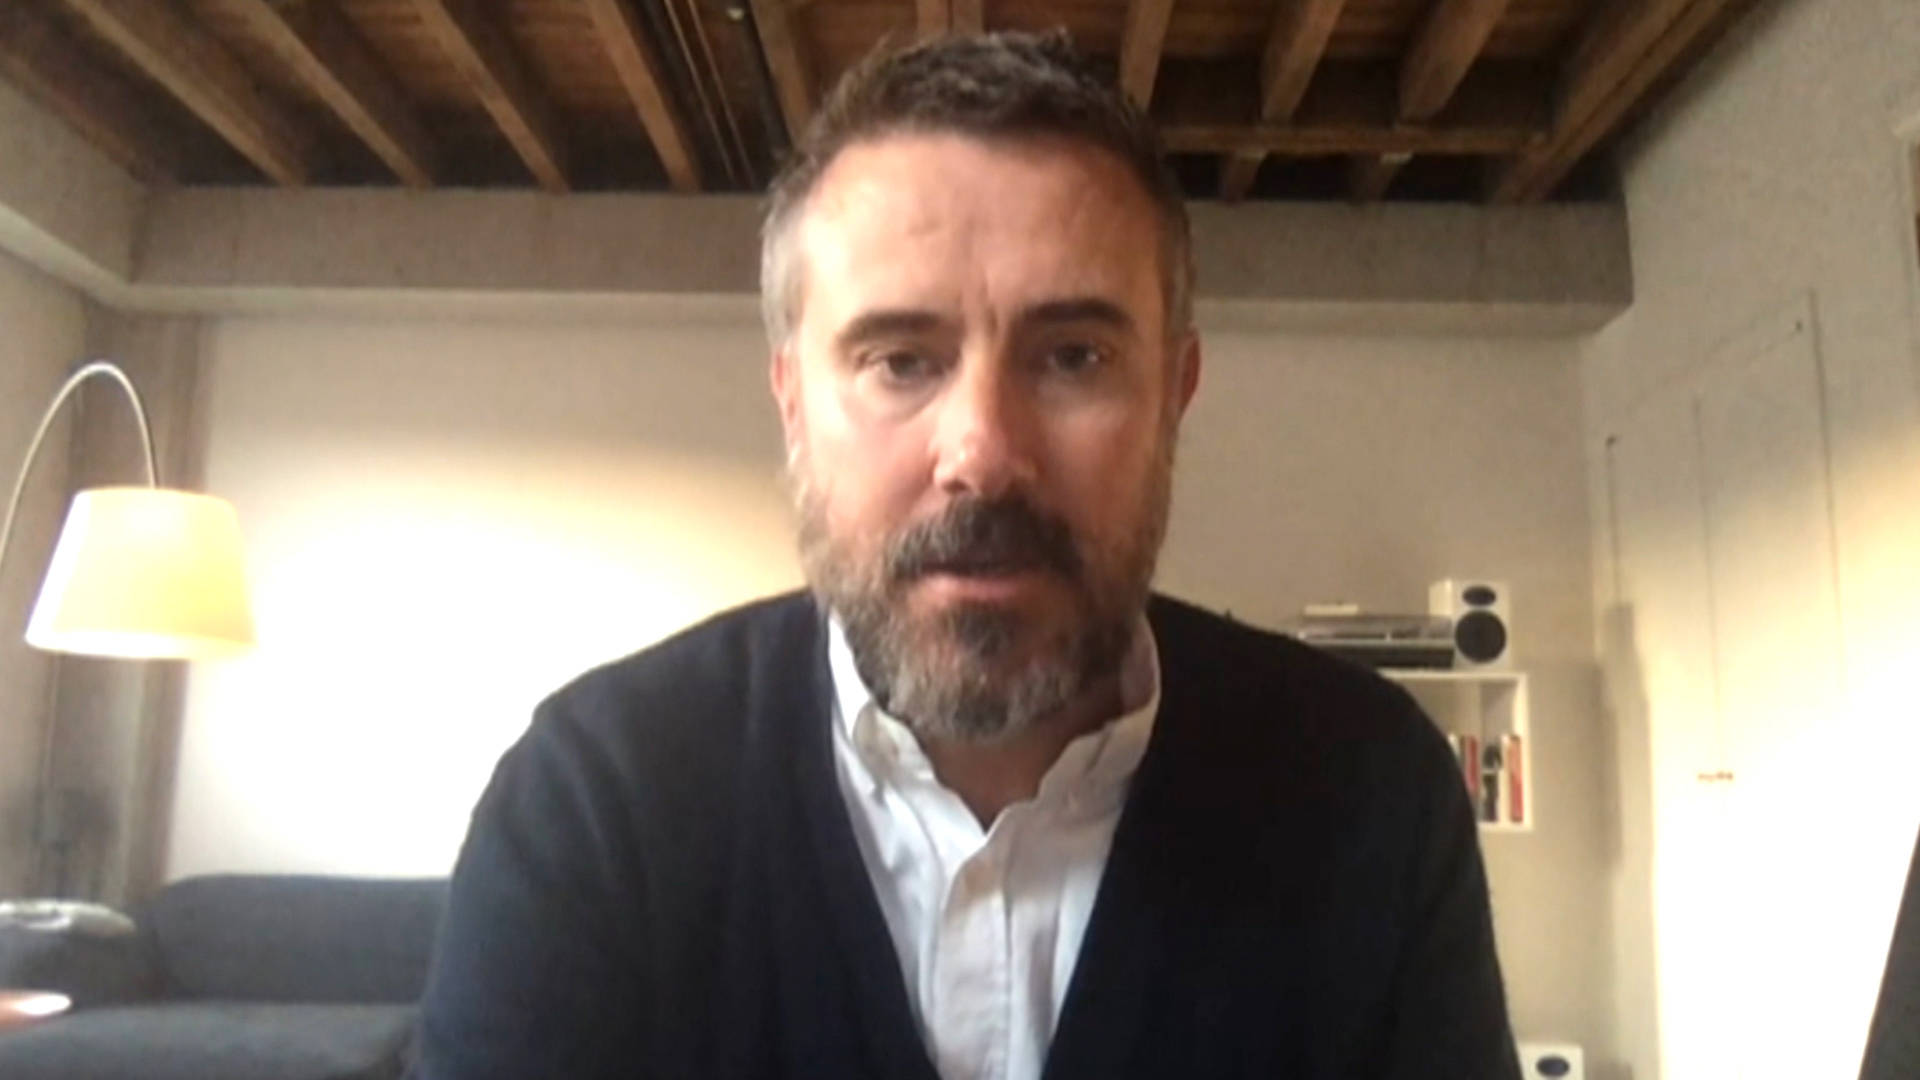 Jeremy Scahill: Trump's Xenophobia Is Horrific, But U.S. Immigration Policy Has Always Been Racist